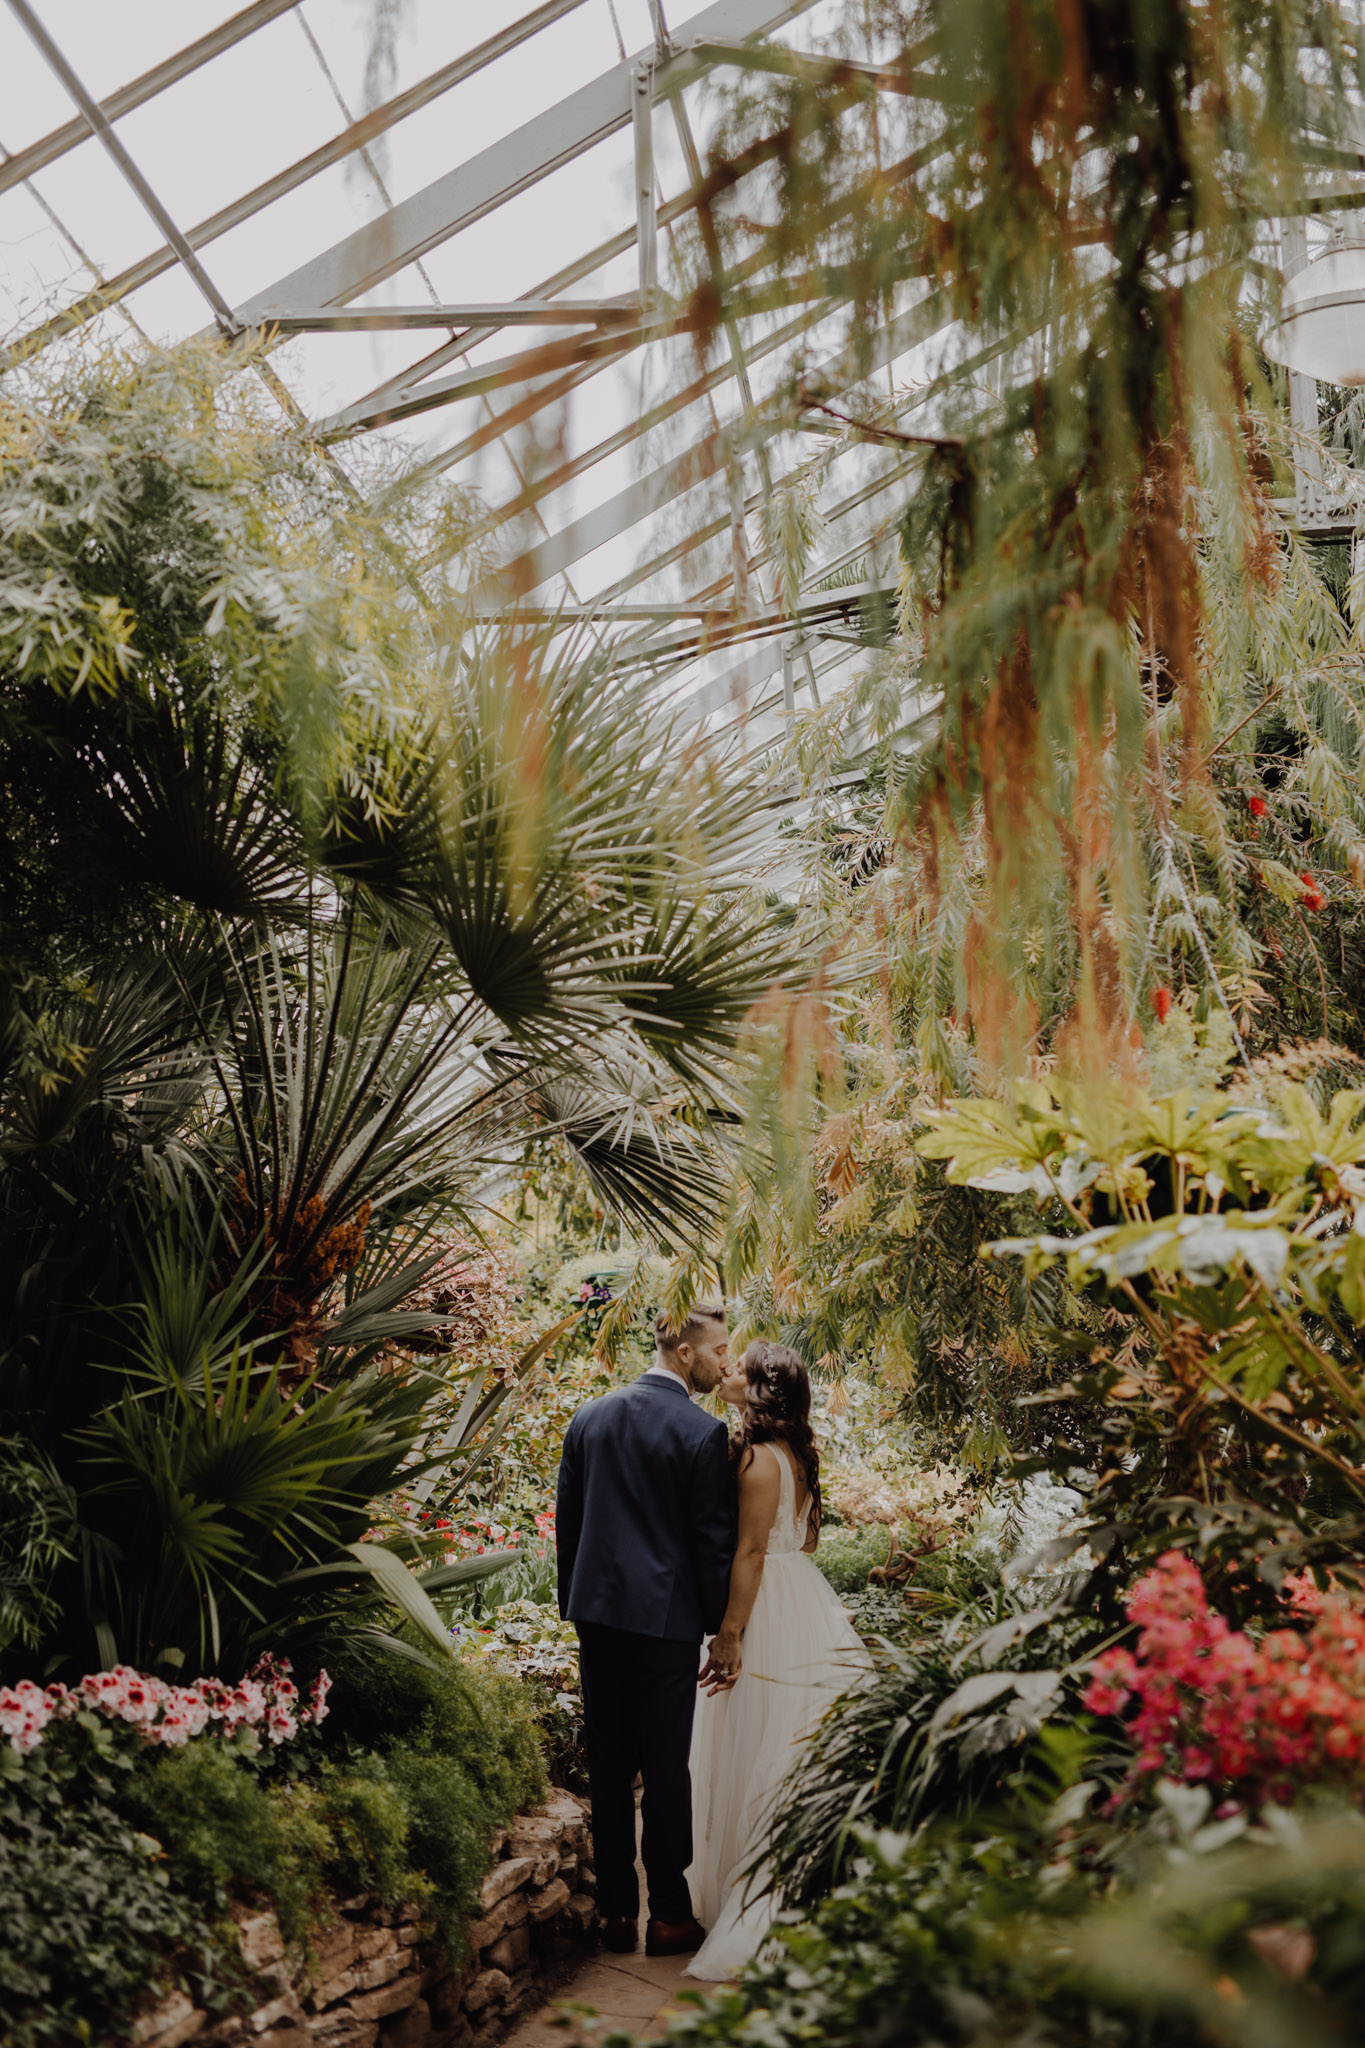 Greenhouse Elopement Allan Gardens Toronto - bride and groom in lush garden